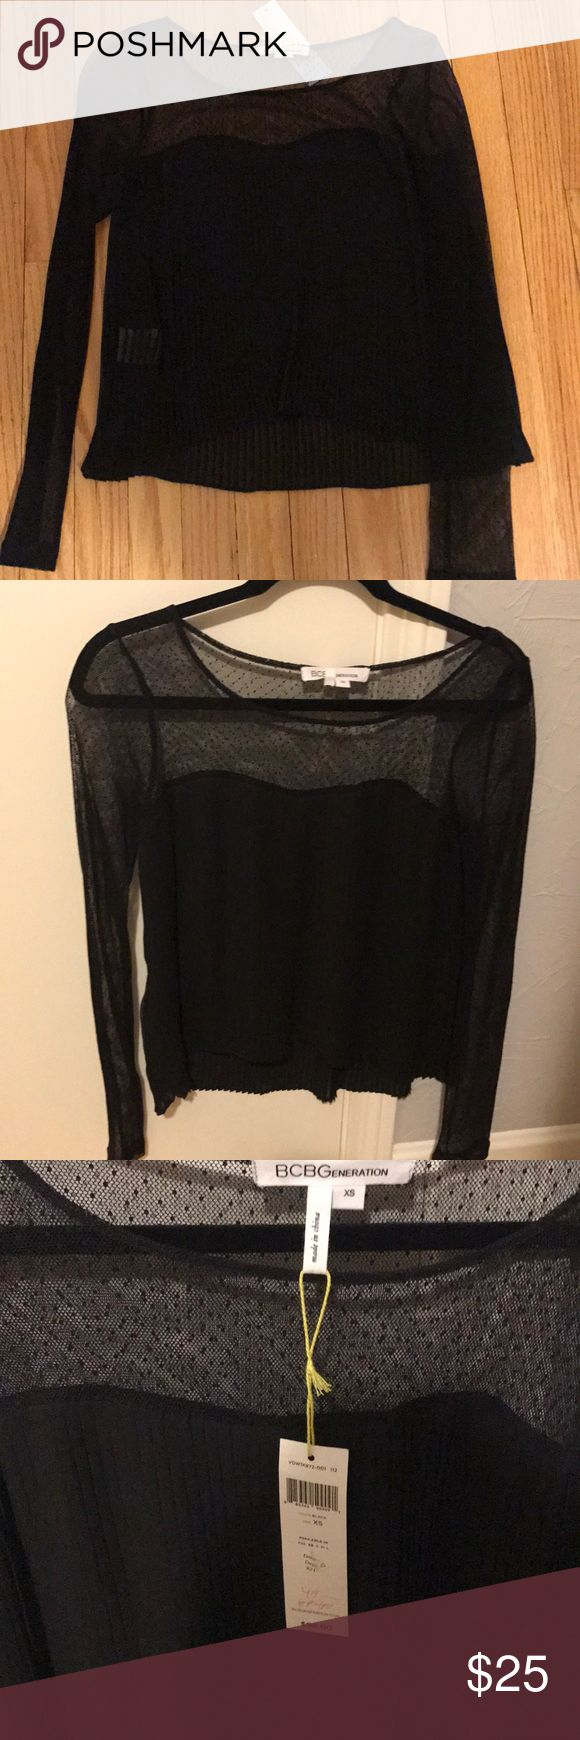 NEW* BCBGeneration top BCBGeneration long sleeve top. Lace arm with accordion body. BCBGeneration Tops Blouses